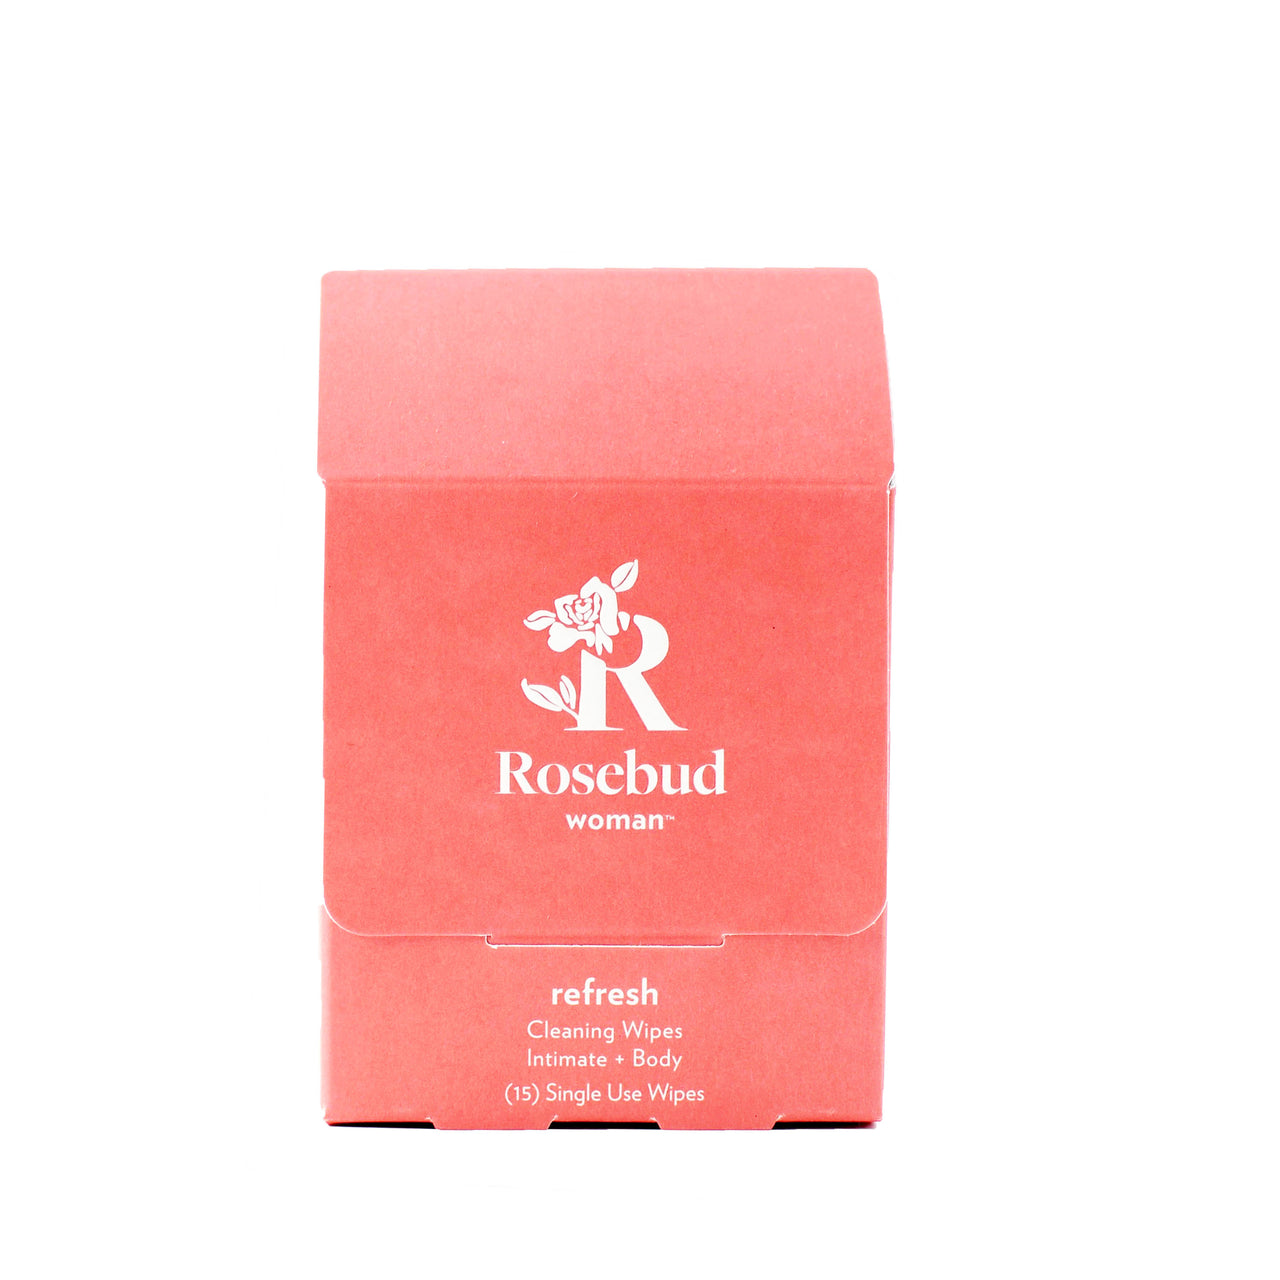 Refresh: Intimate Cleansing Wipes